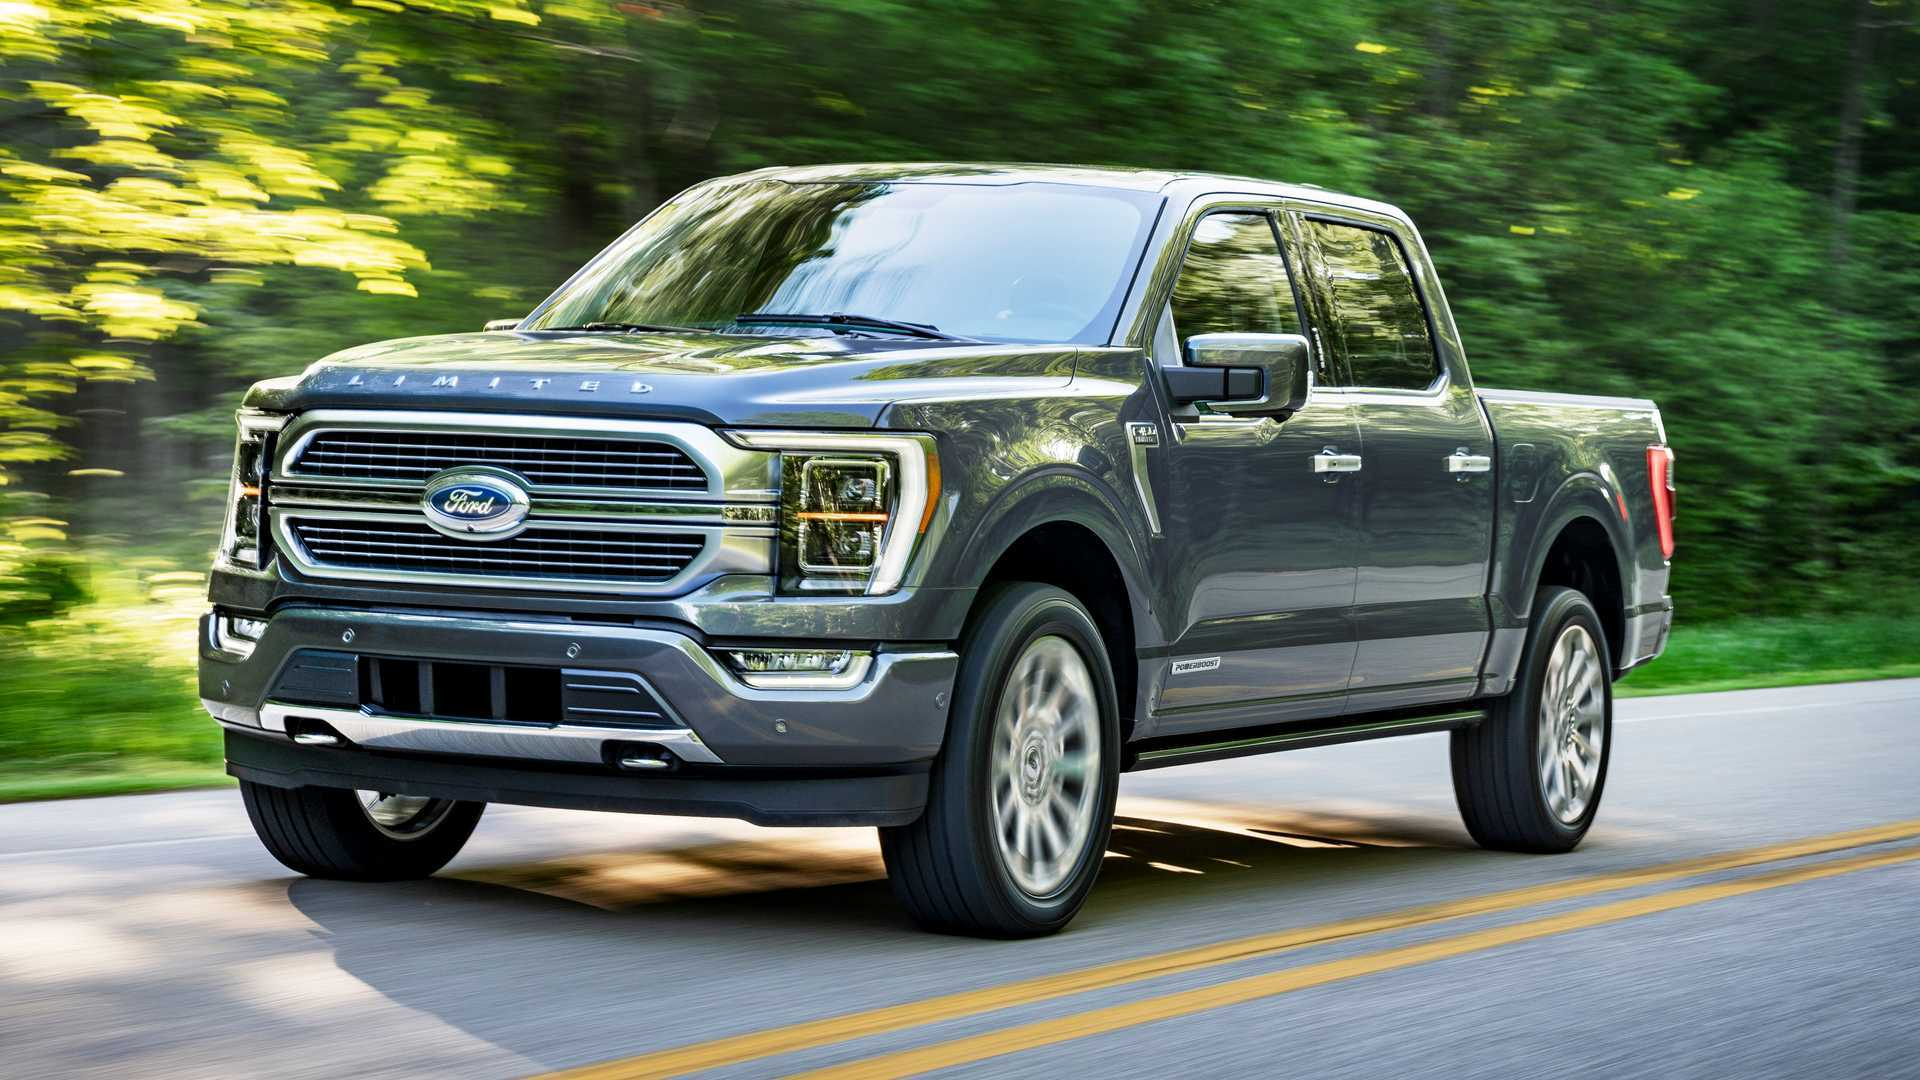 2021 Ford F100 Price, Design and Review